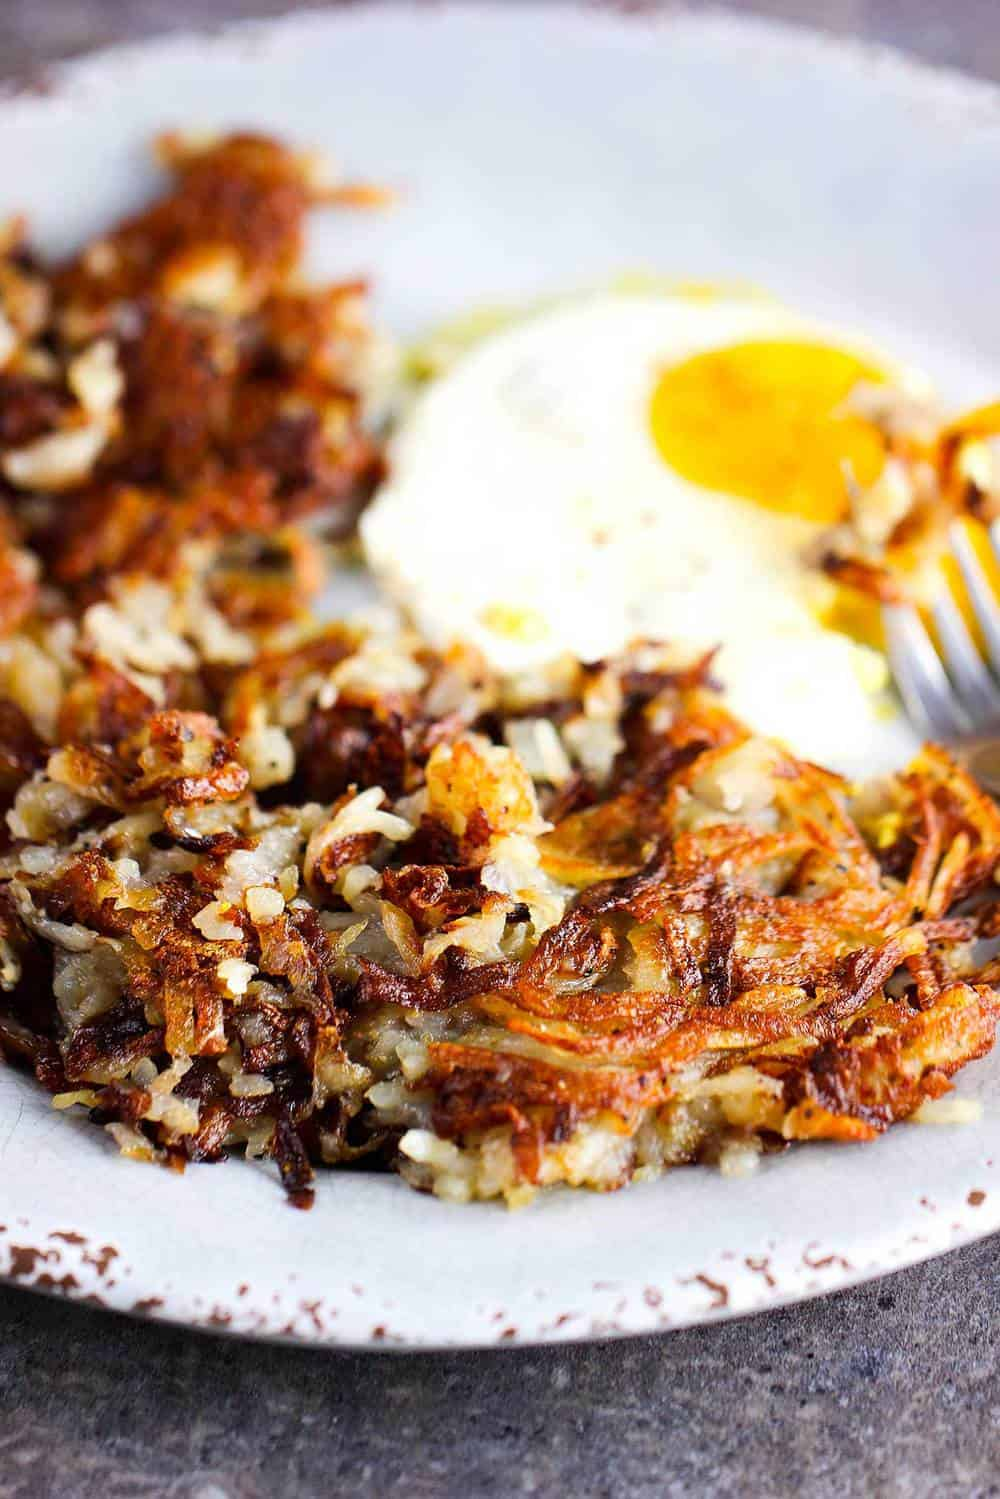 Perfectly cooked crispy hash browns on a plate with an egg